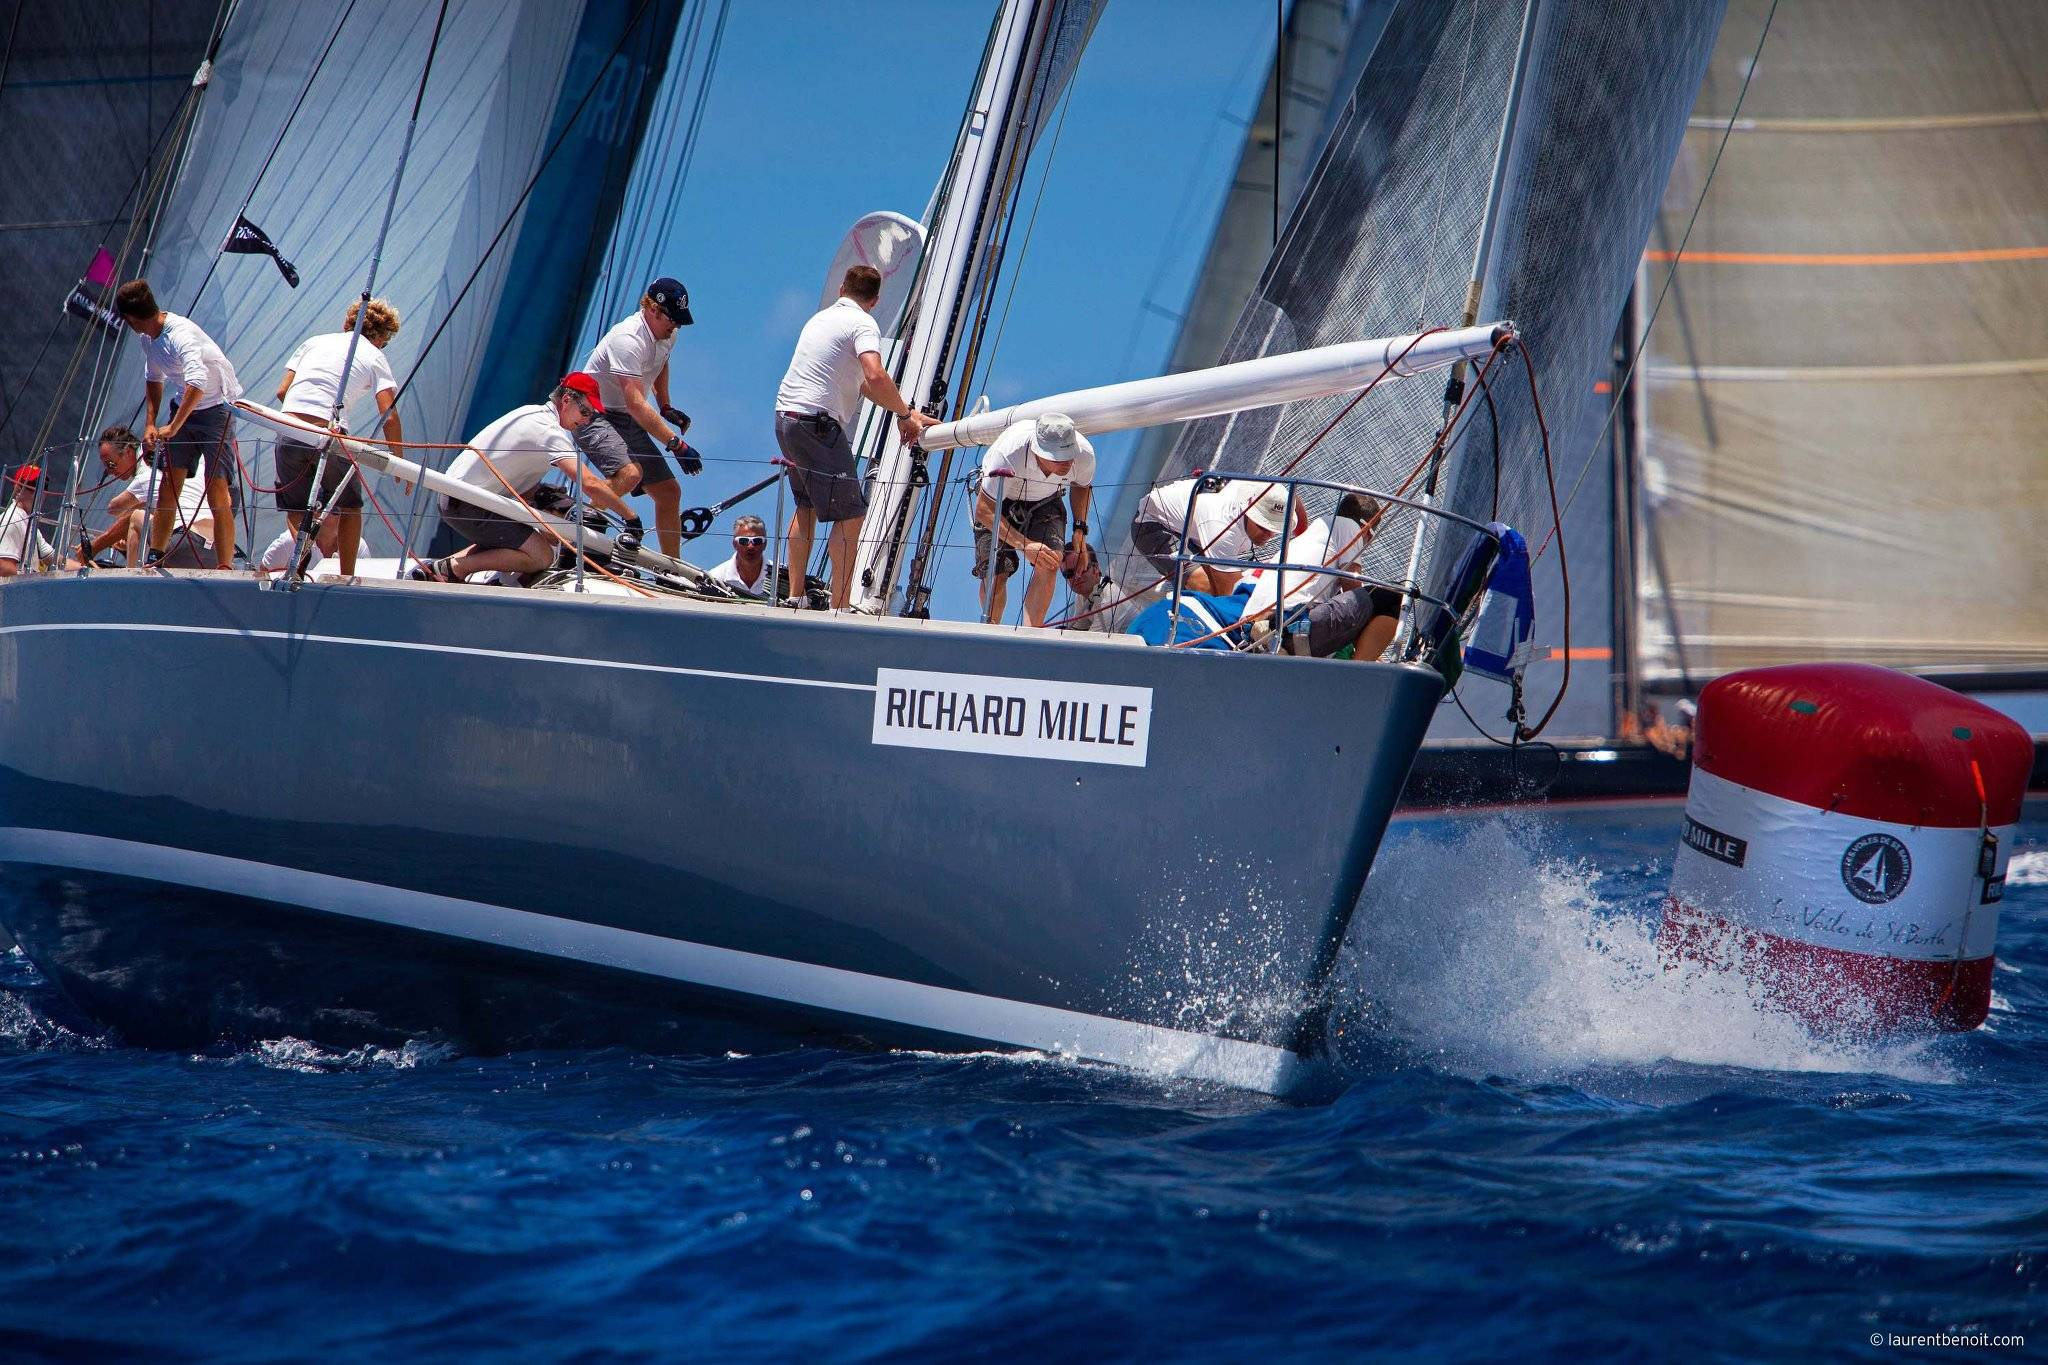 Richard Mille Named Principal Partner of the Voiles de Saint Barth Competition